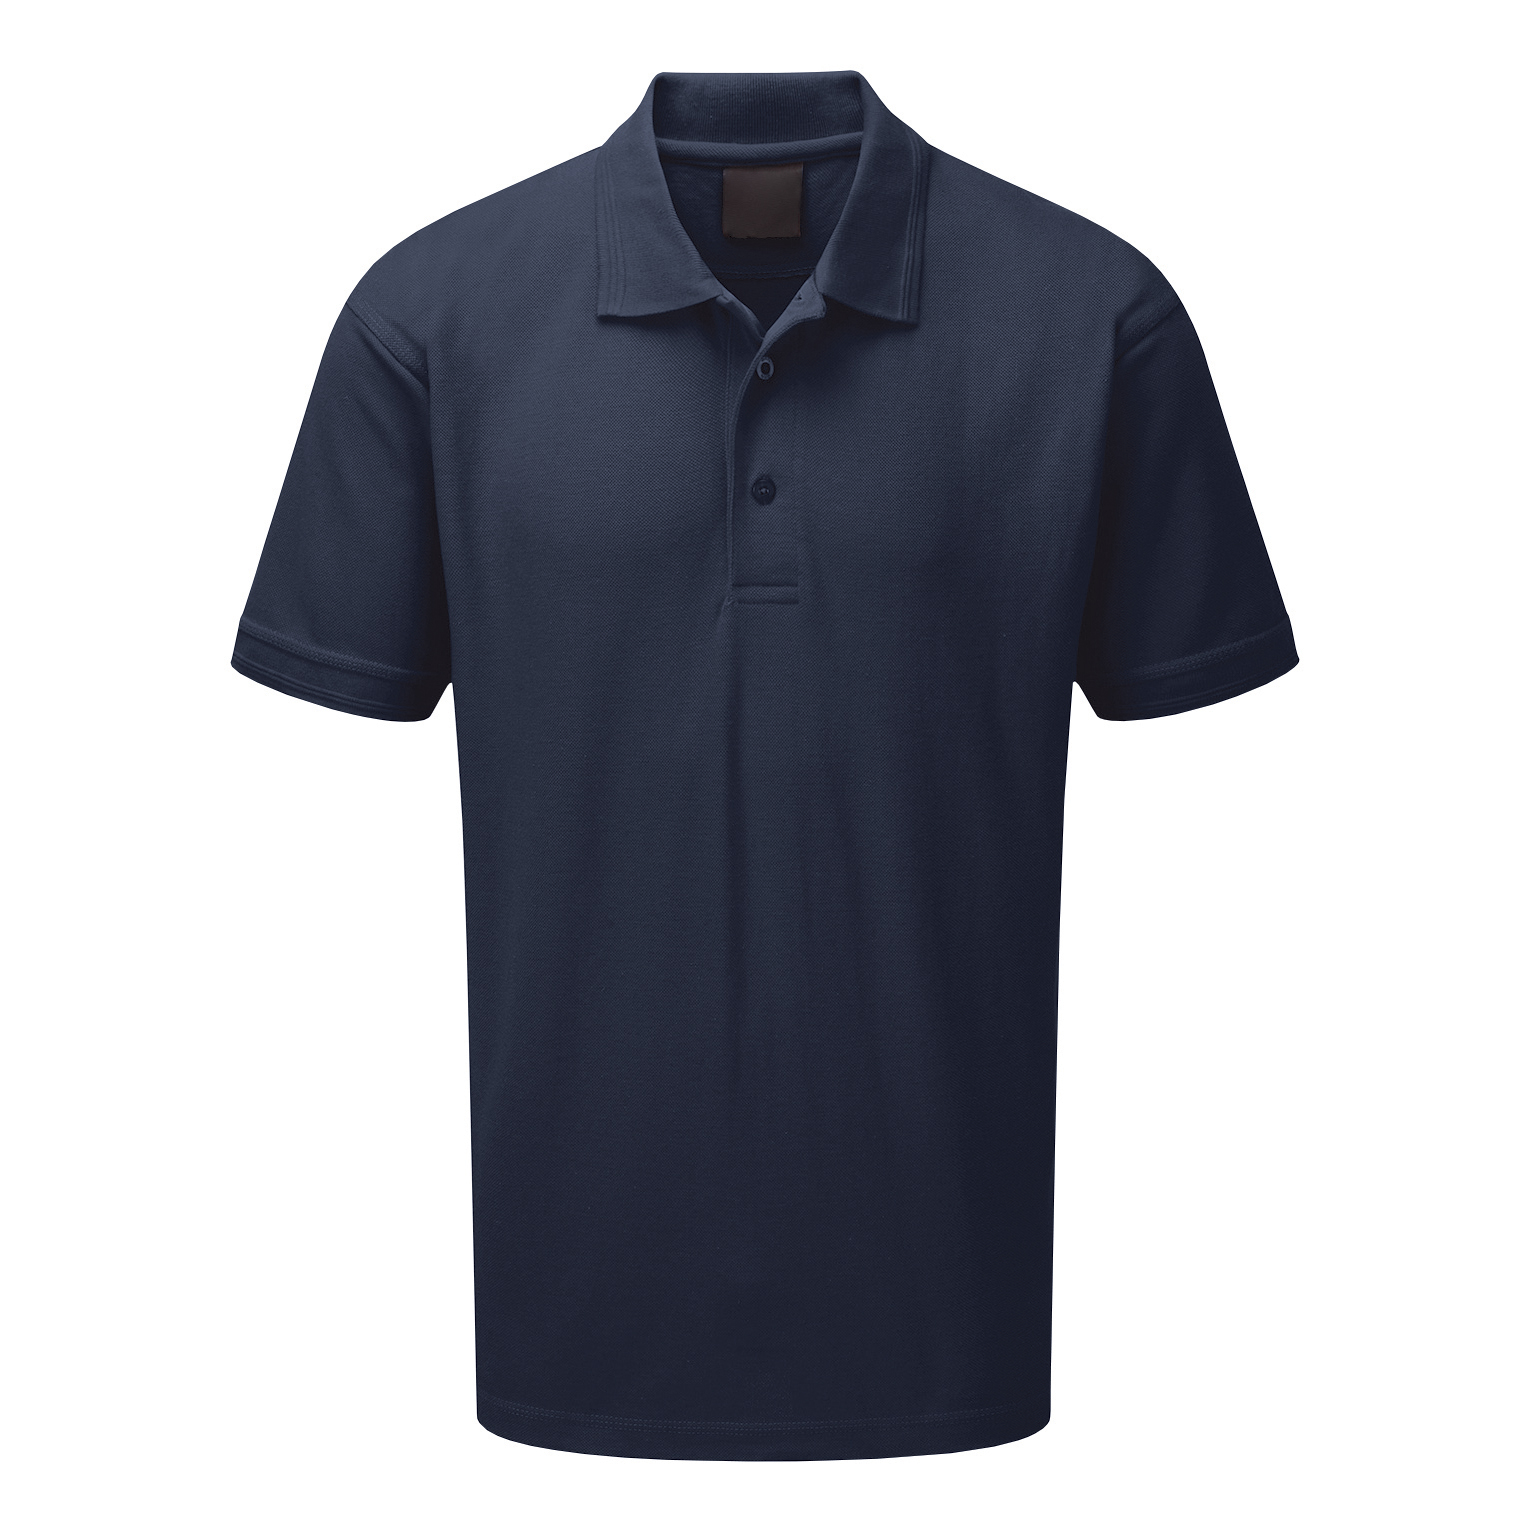 Supertouch Polo Shirt Classic Polycotton Extra Large Navy Ref 56CN4 *Approx 3 Day Leadtime*